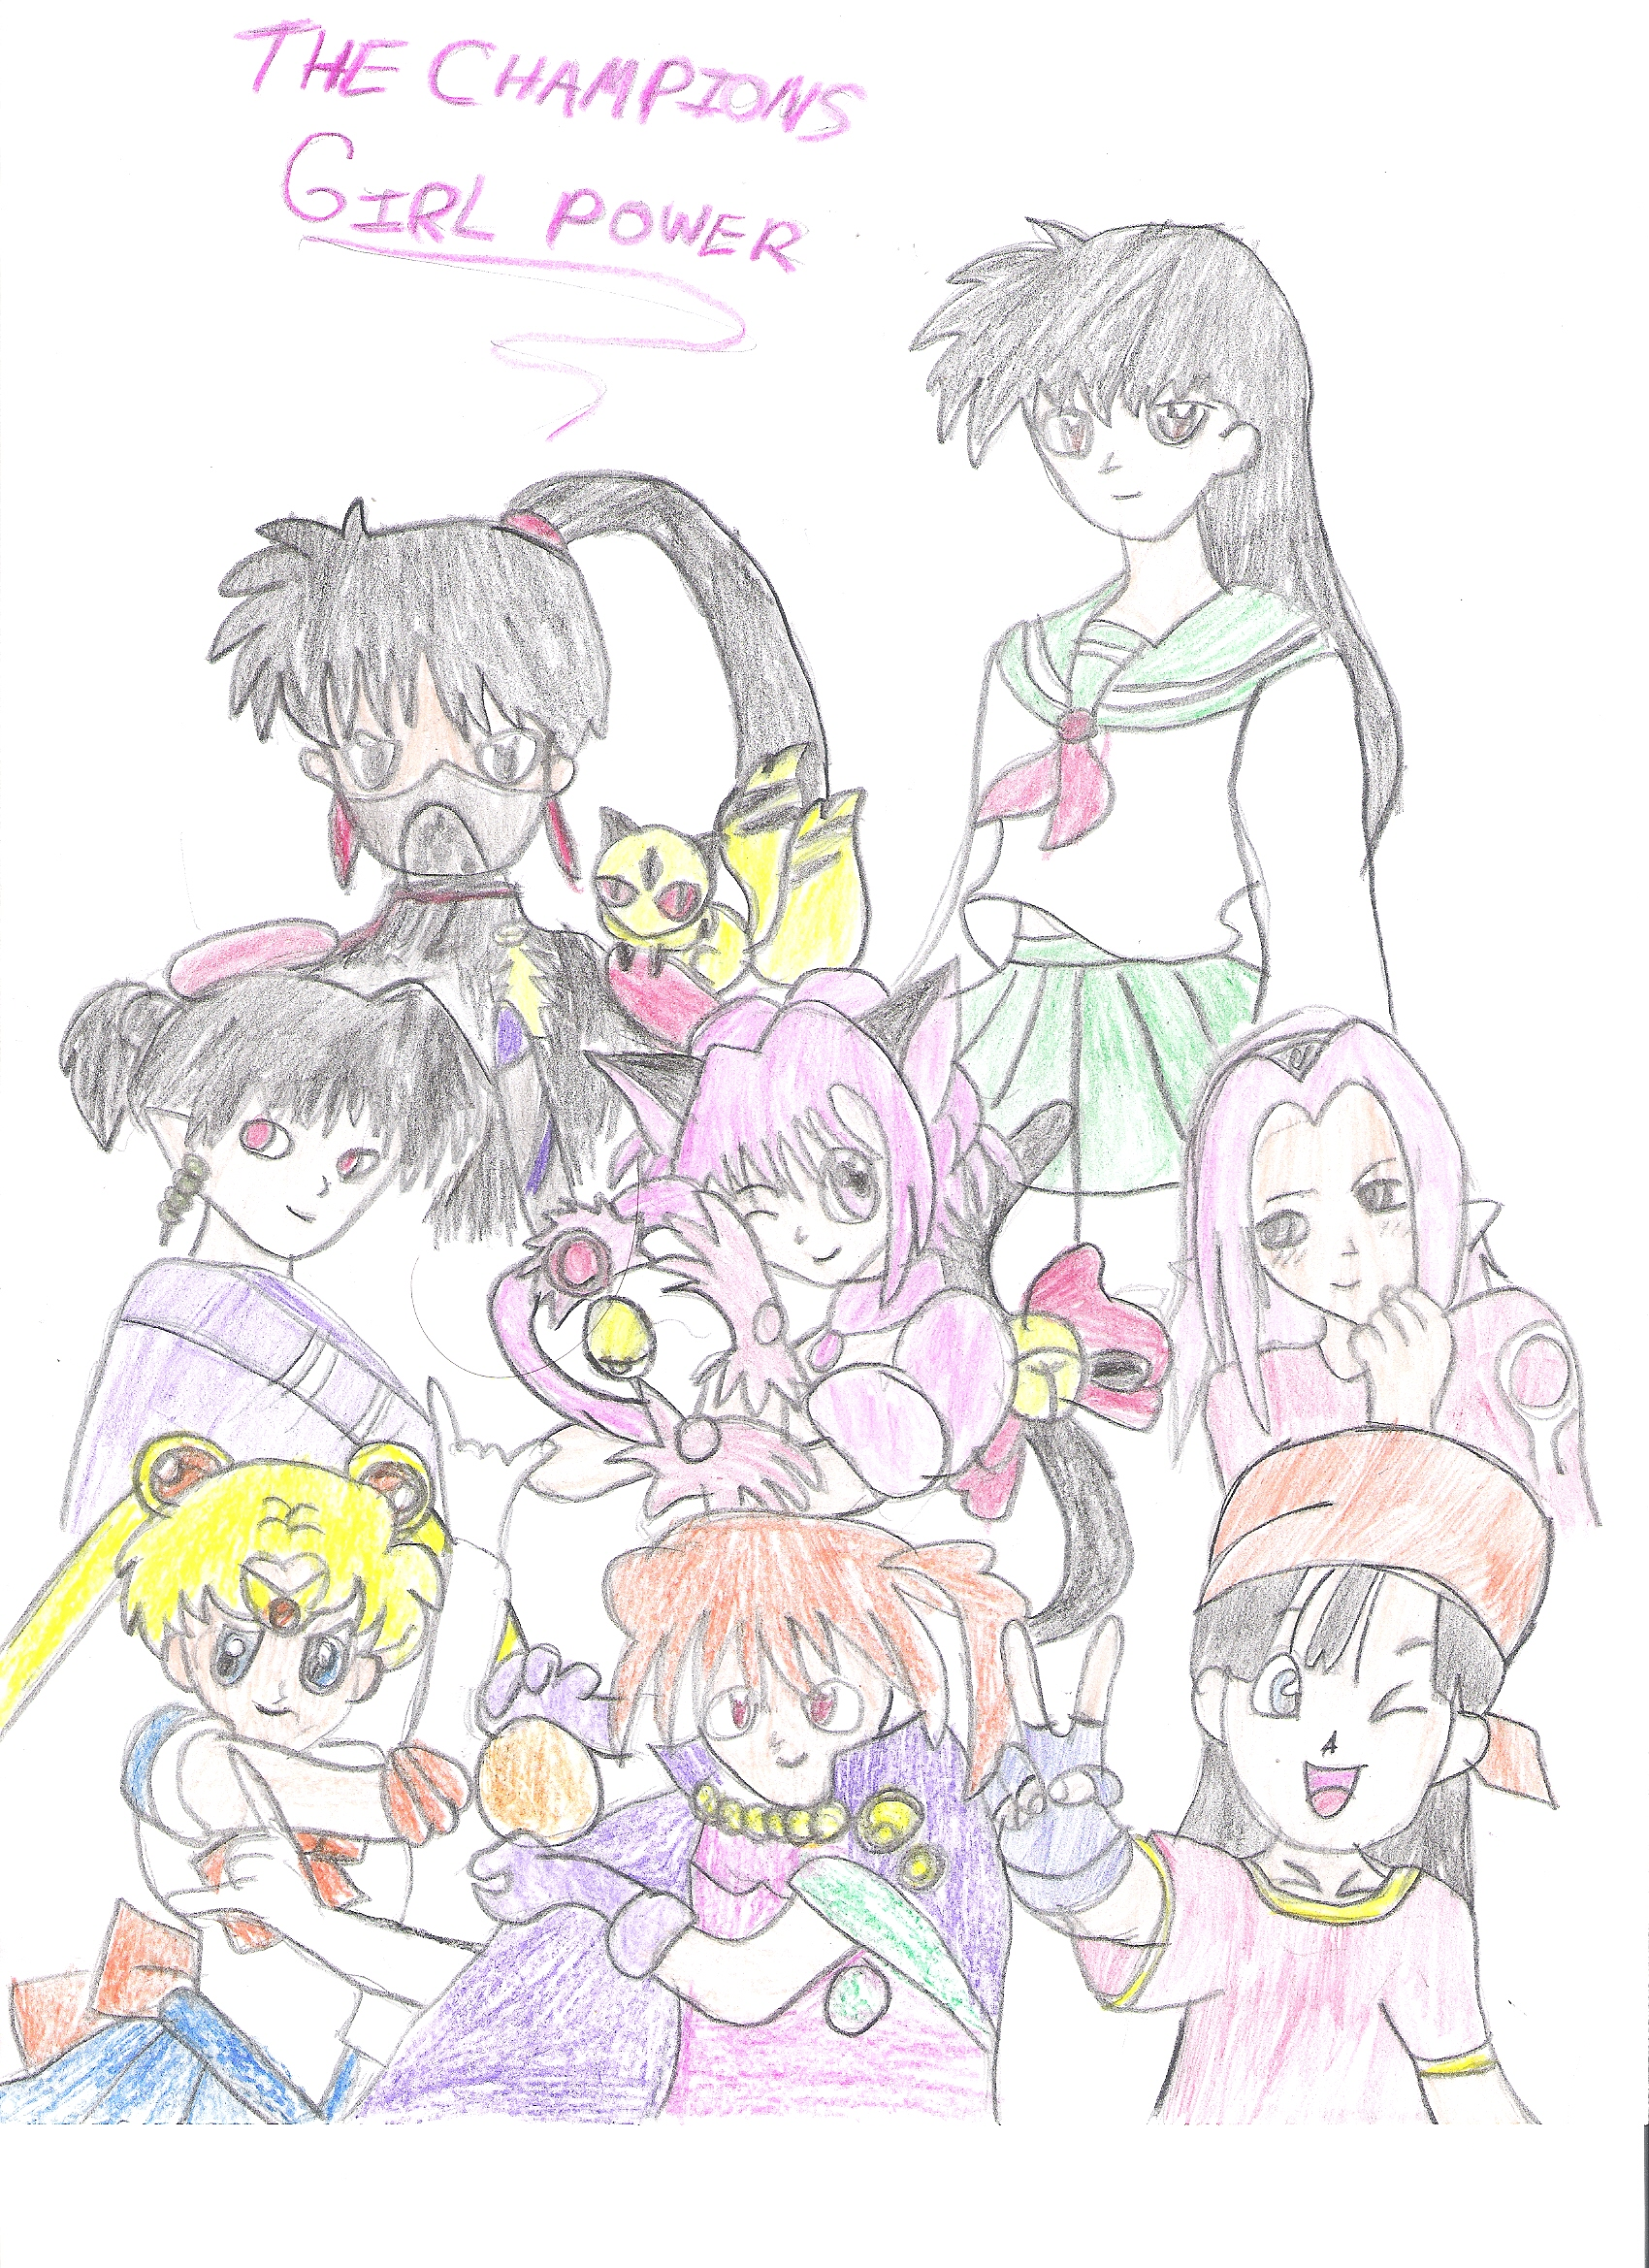 The Champions Girl Power by Arue